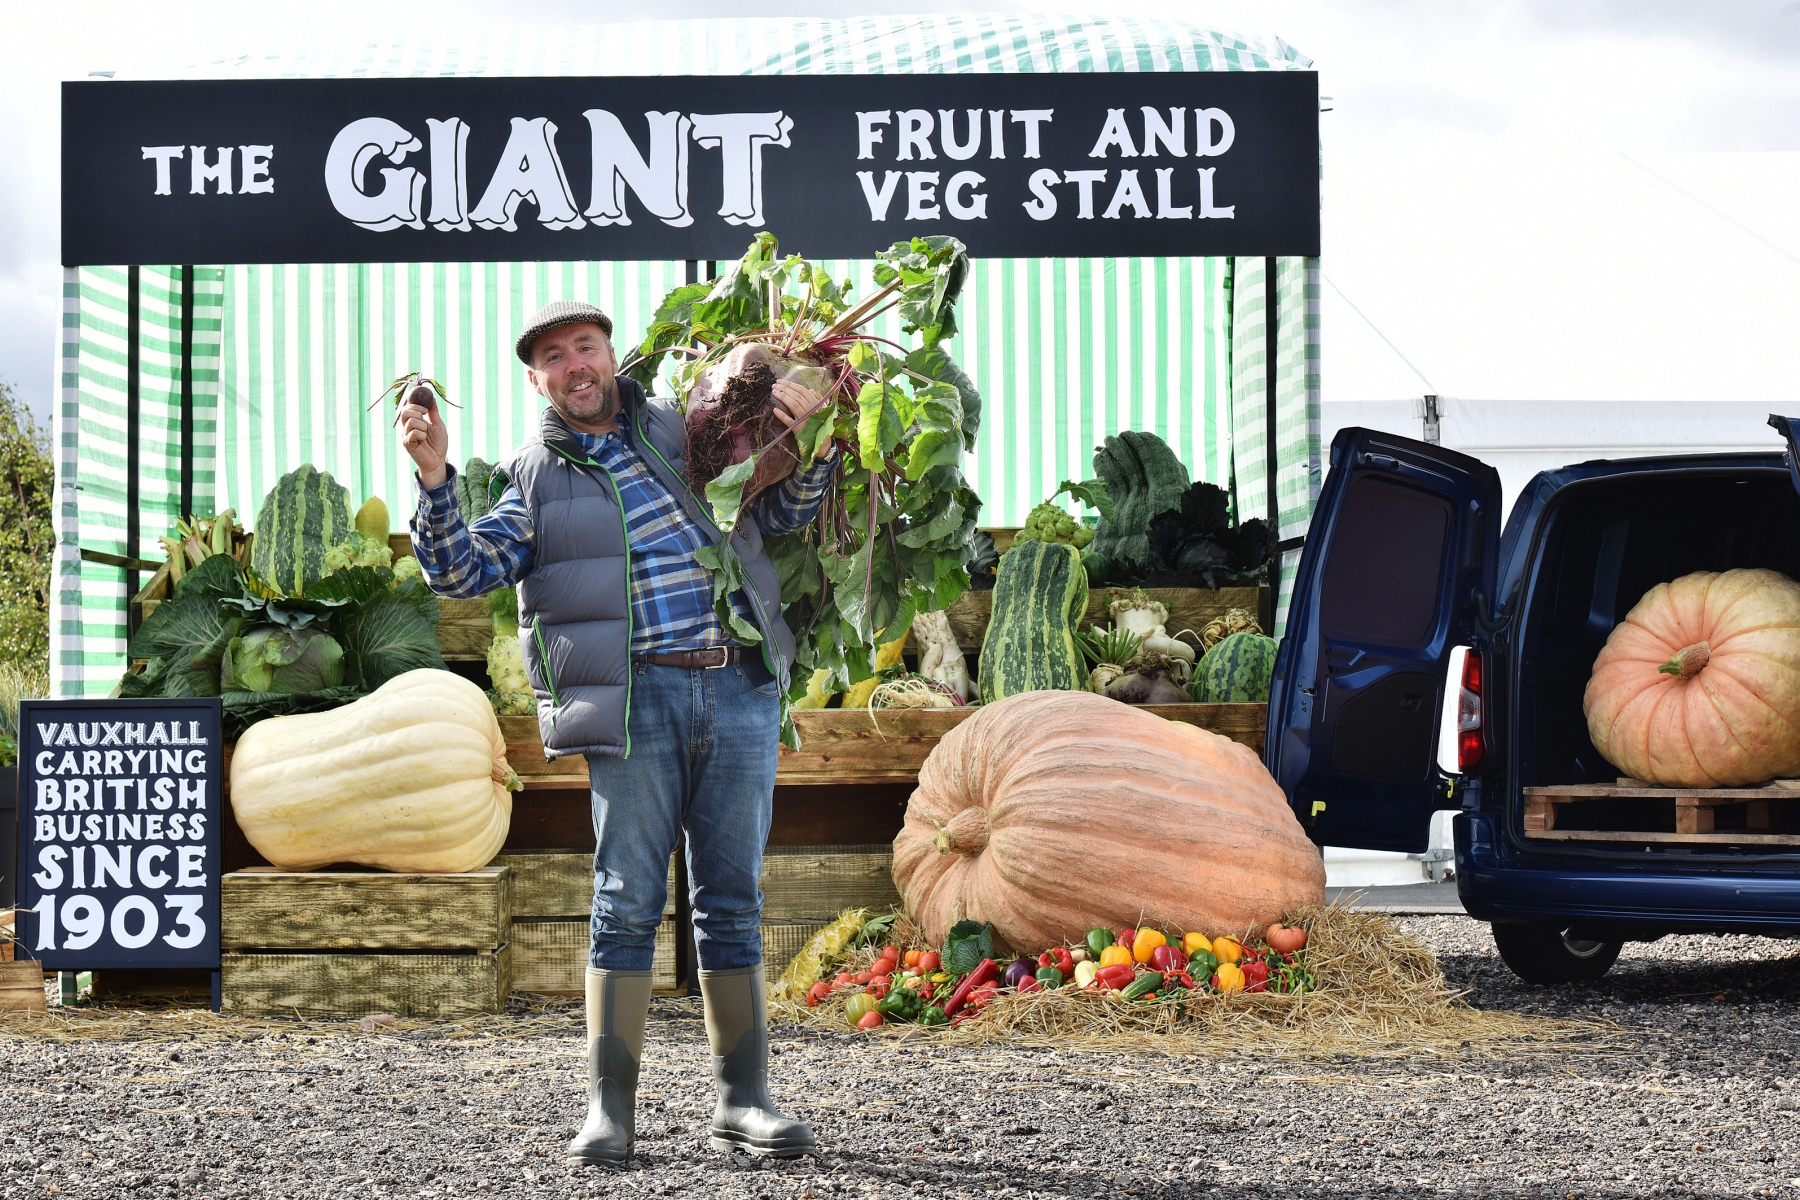 Vauxhall helps create giant fruit and veg stall